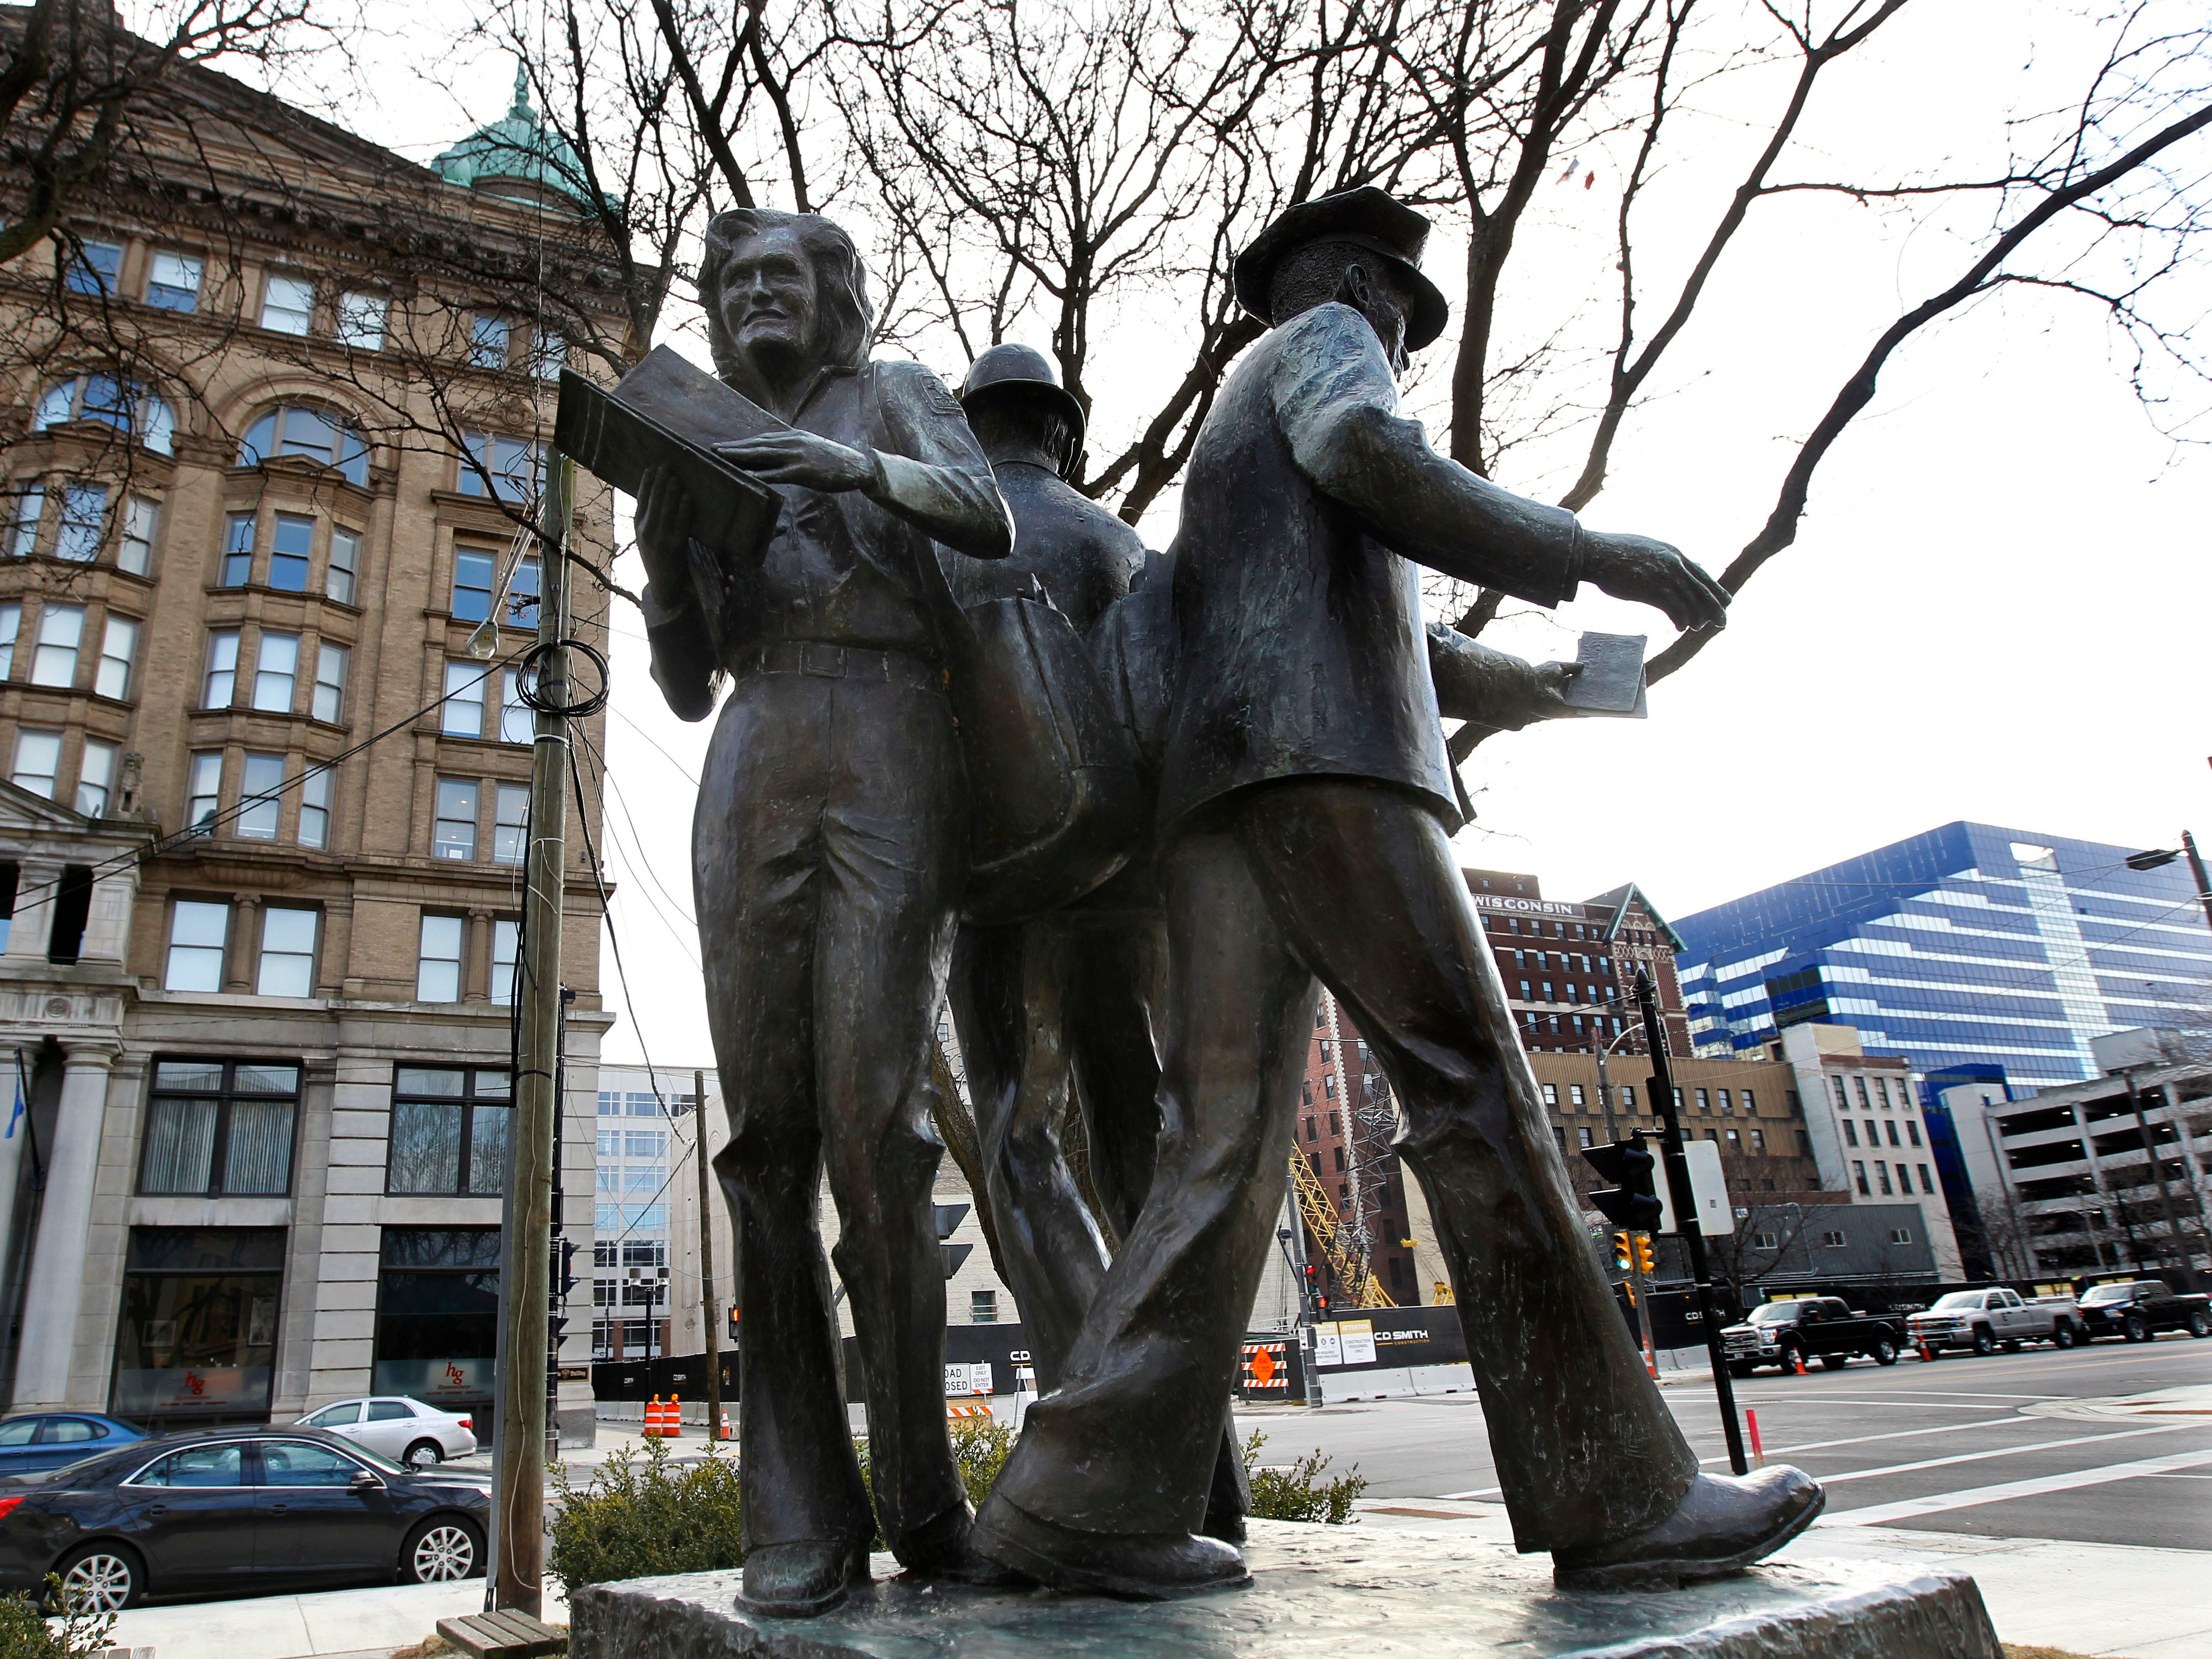 A statue honoring the work of letter carriers is seen on Plankinton Avenue in Milwaukee.